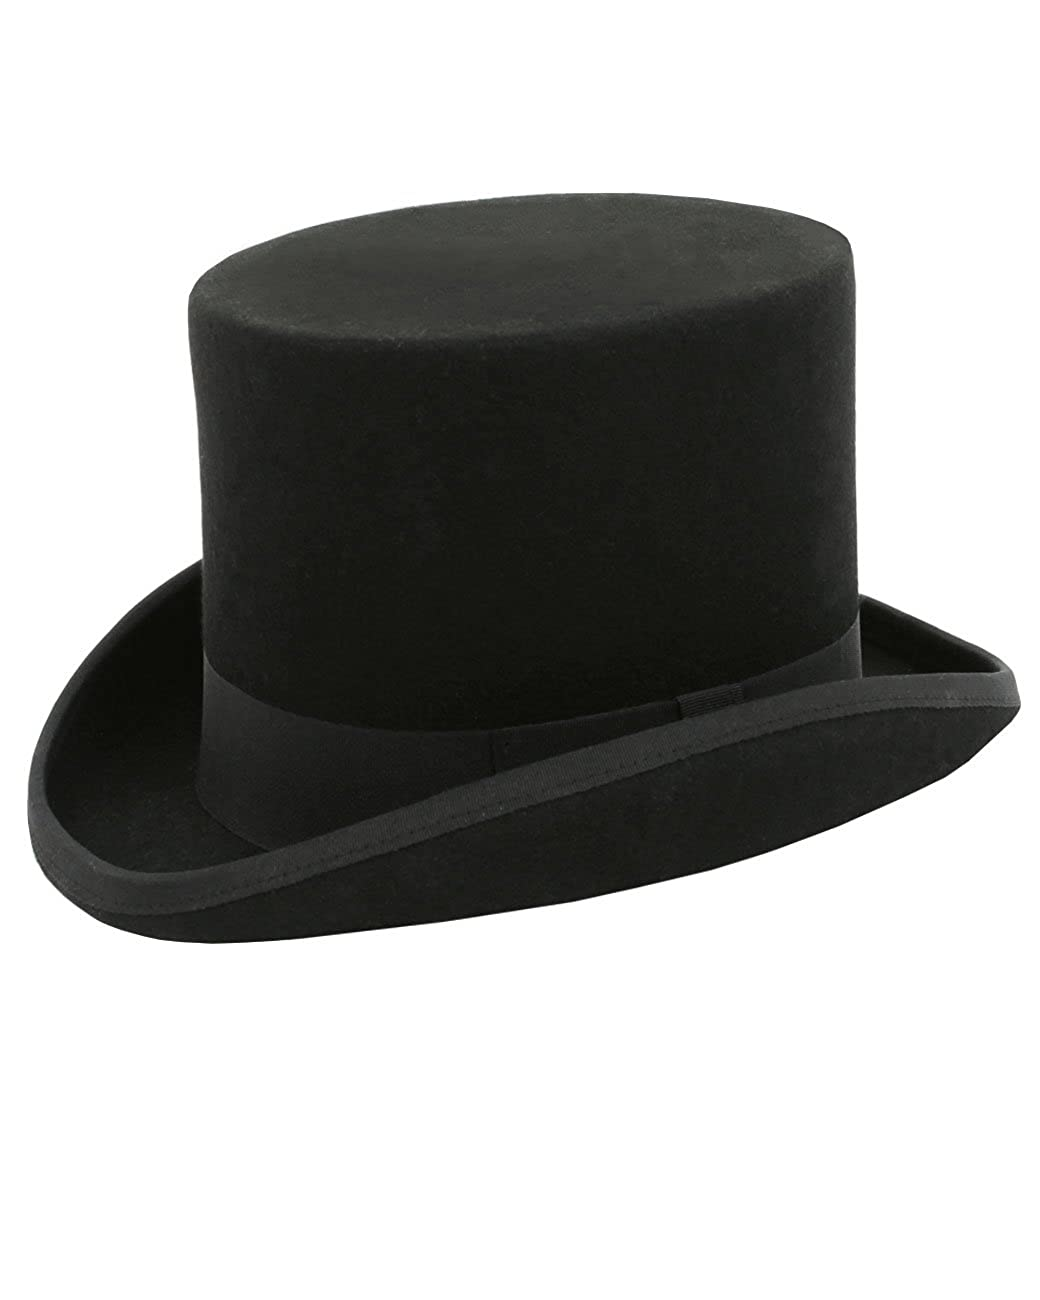 1920s Mens Hats & Caps | Gatsby, Peaky Blinders, Gangster Dobell Mens Black Top Hat 100% Wool Formal Wedding Races $69.95 AT vintagedancer.com